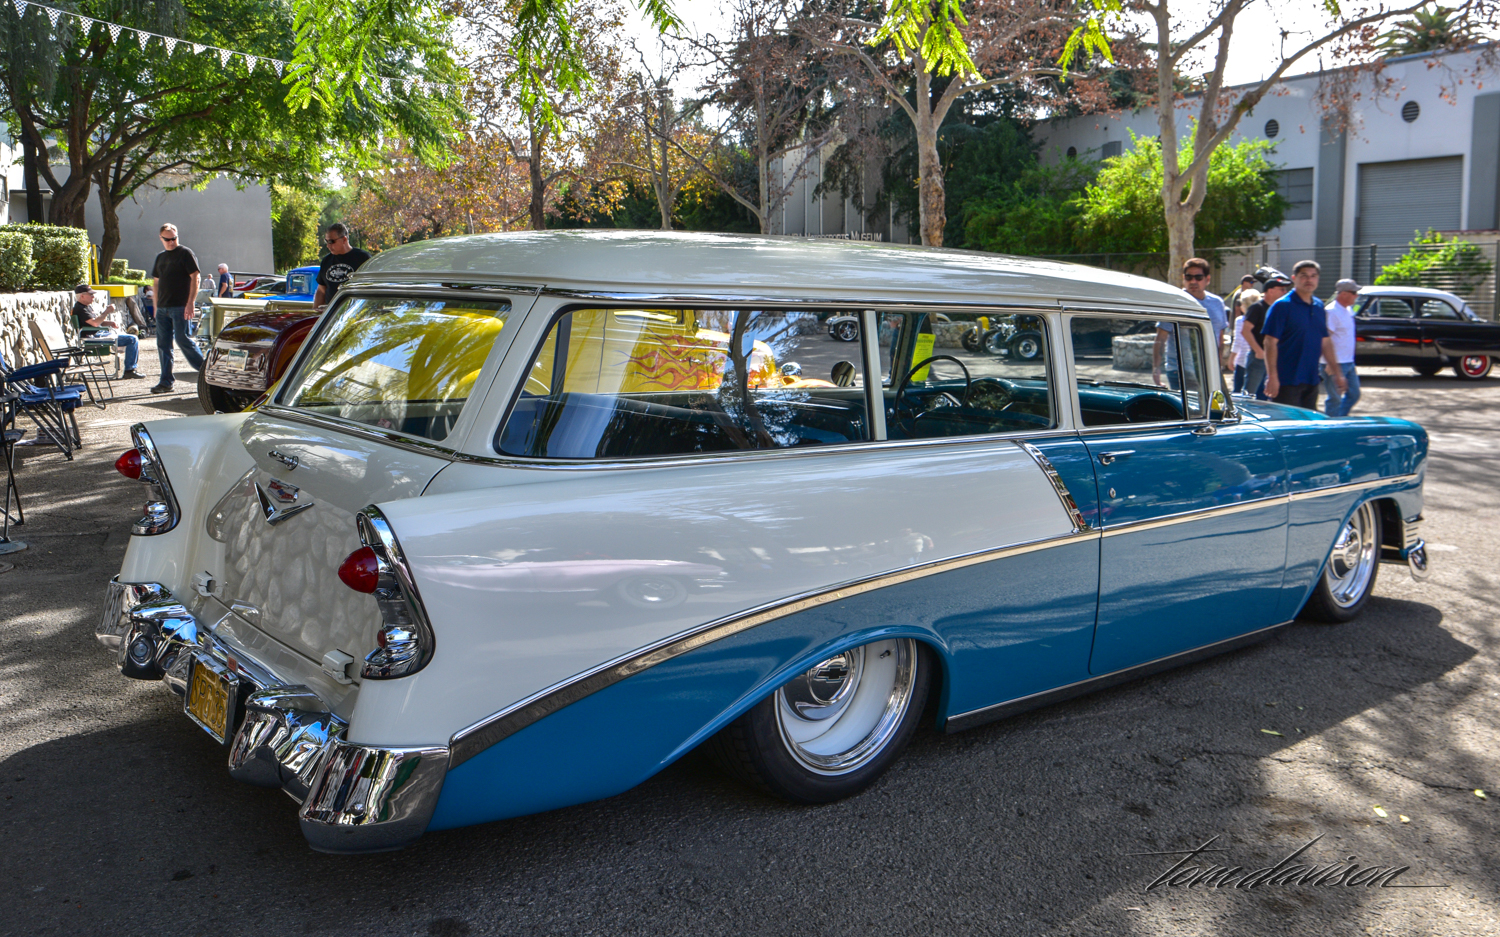 1956 Chevy station wagon.